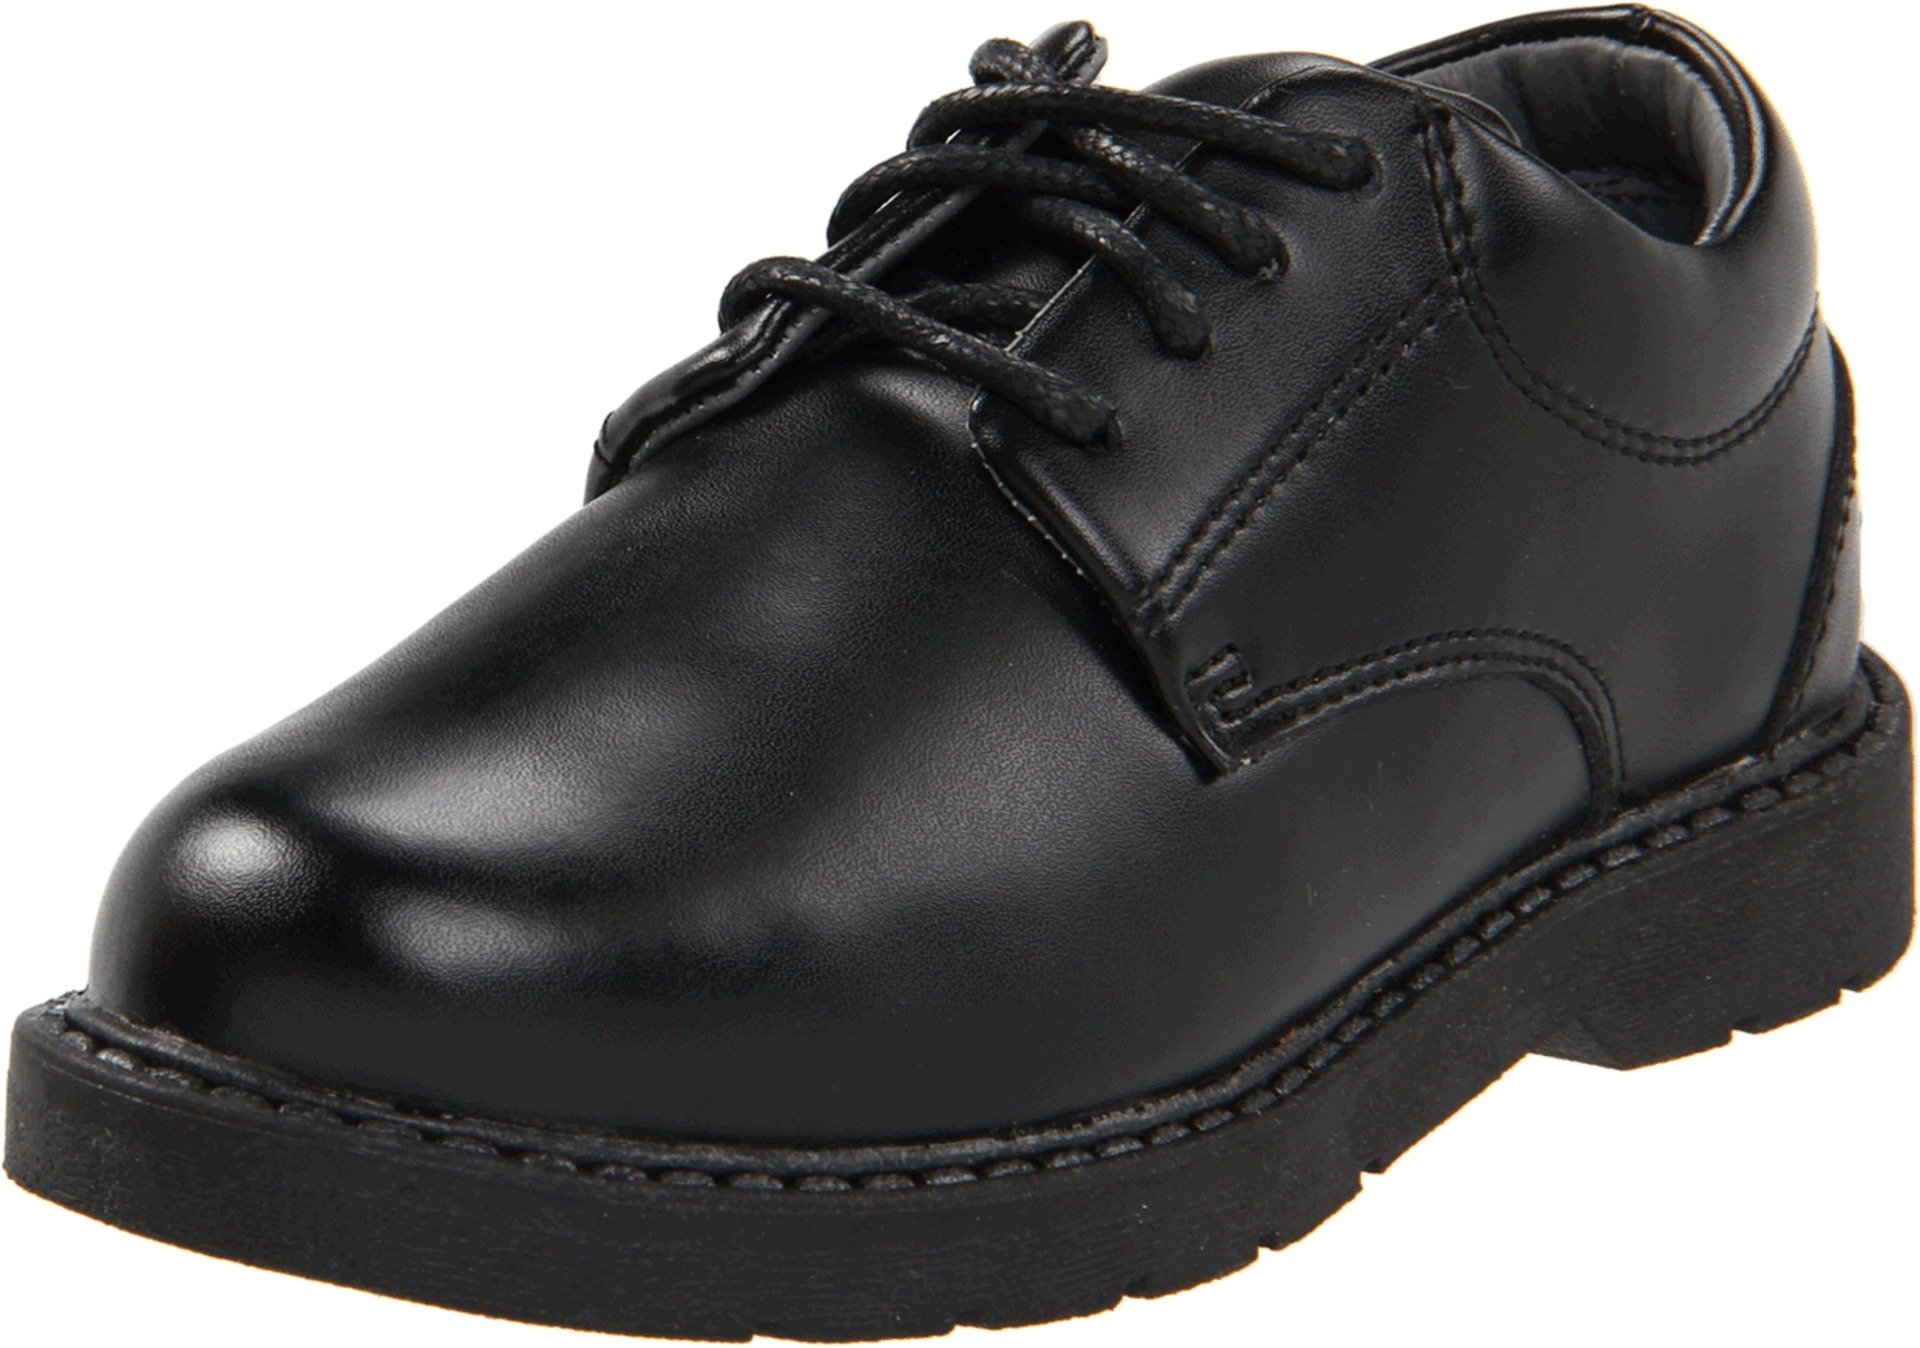 School Issue Scholar 5200 Uniform Shoe (Toddler/Little Kid/Big Kid),Black Leather,12 W US Little Kid